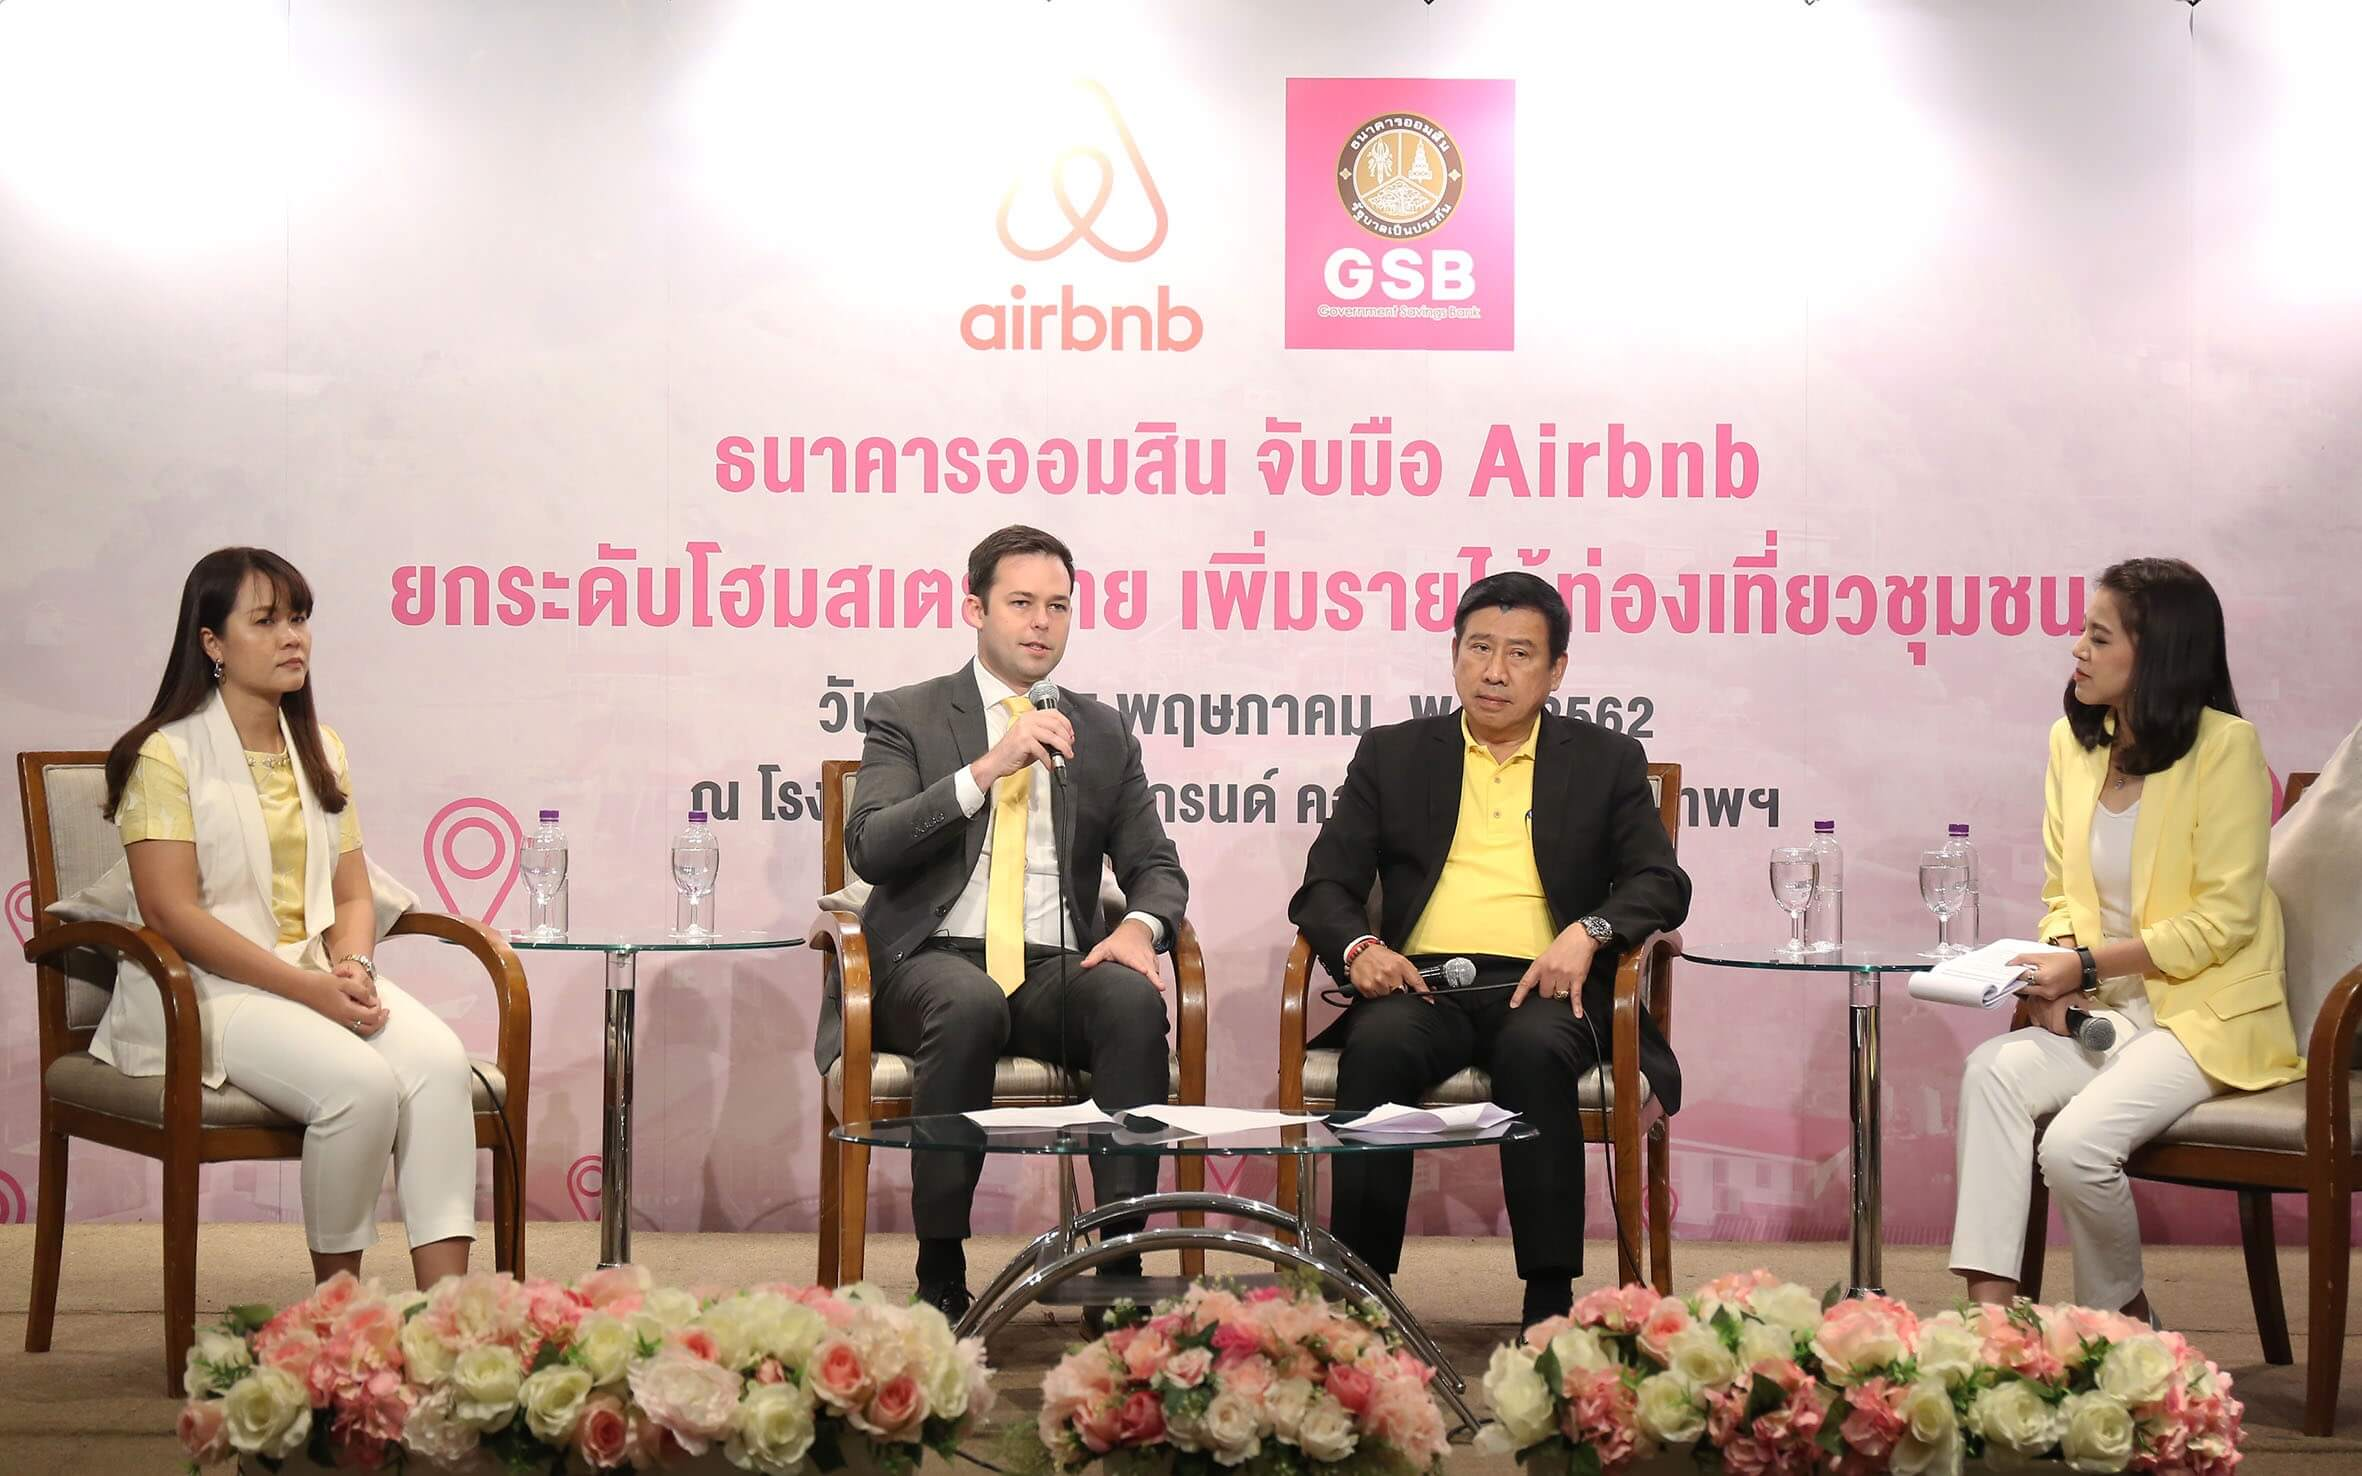 Dr.-Chatchai-Payuhanaveechai-GSB-President-and-CEO-and-Mike-Orgill-Airbnb-General-Manager-for-Southeast-Asia-Hong-Kong-and-Taiwan-jointly-launched-the-partnership